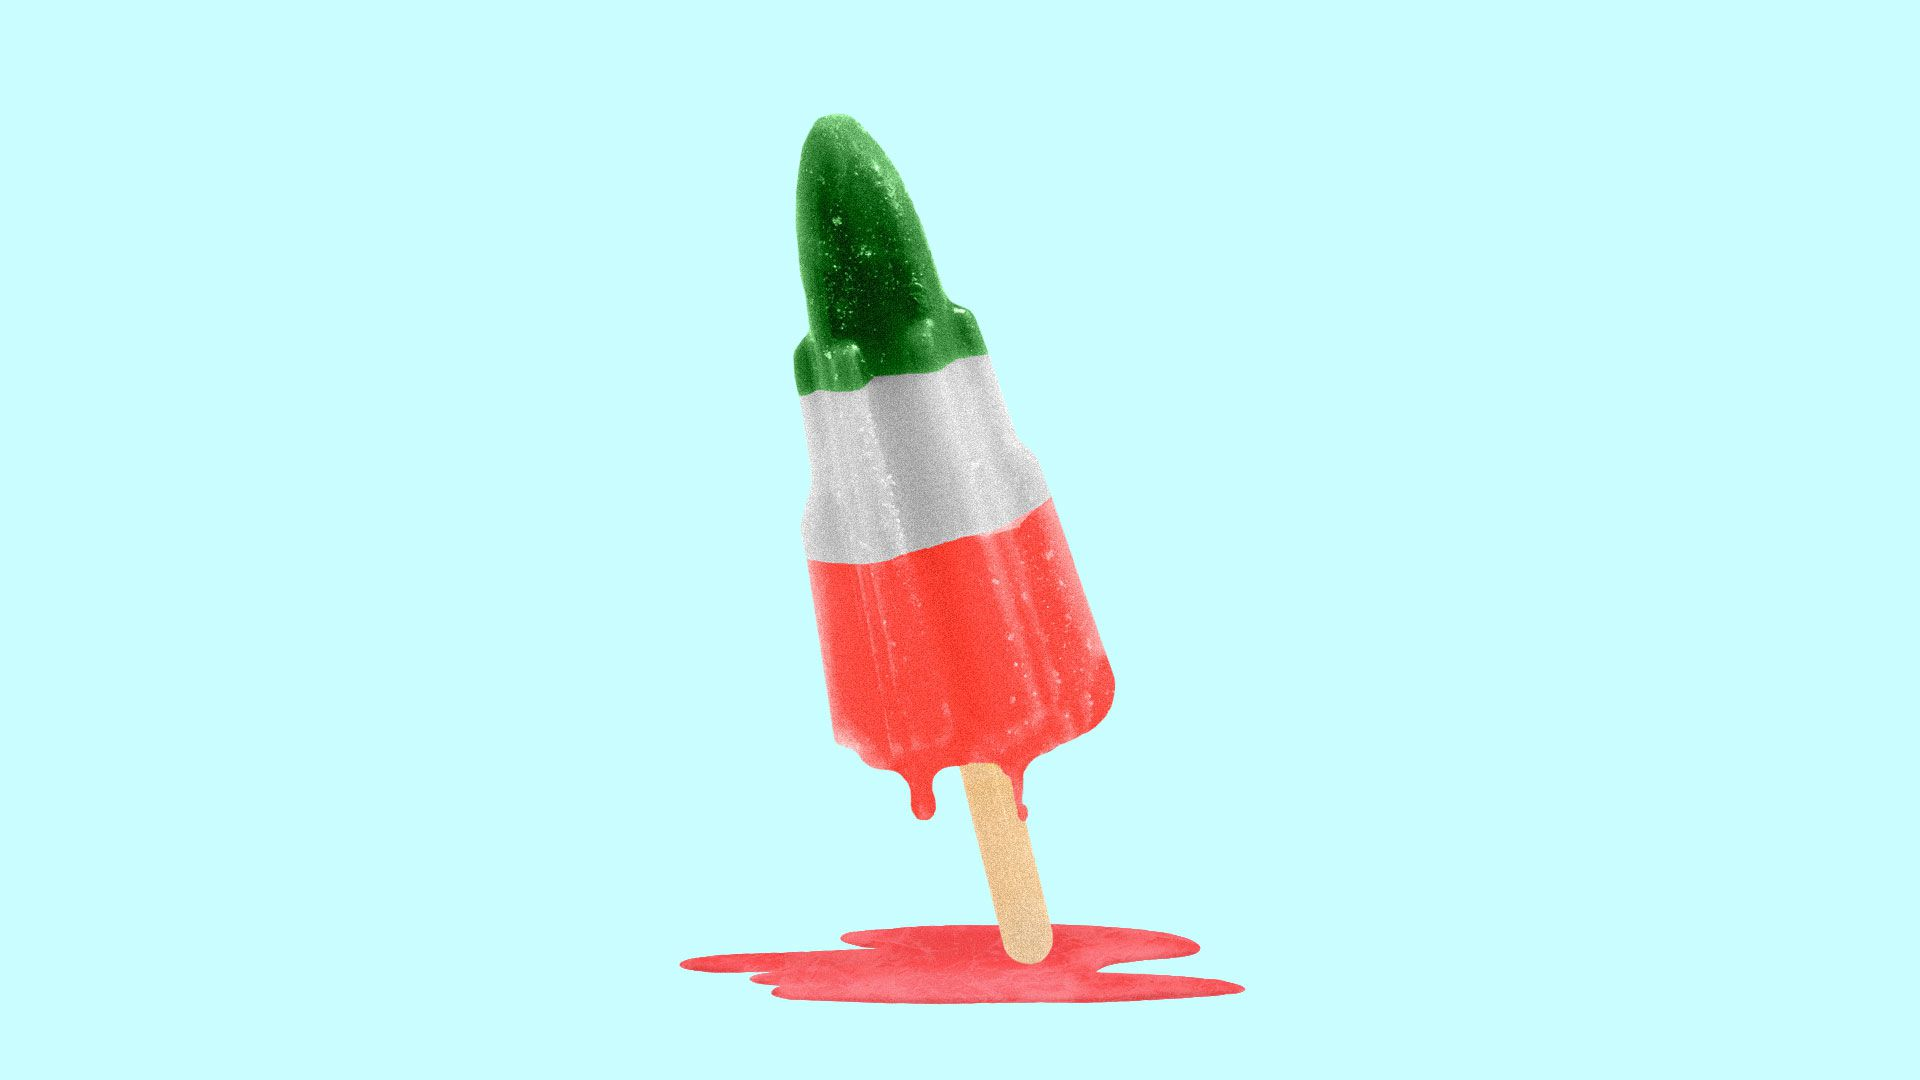 Illustration of a melting popsicle made up of the Iranian flag colors